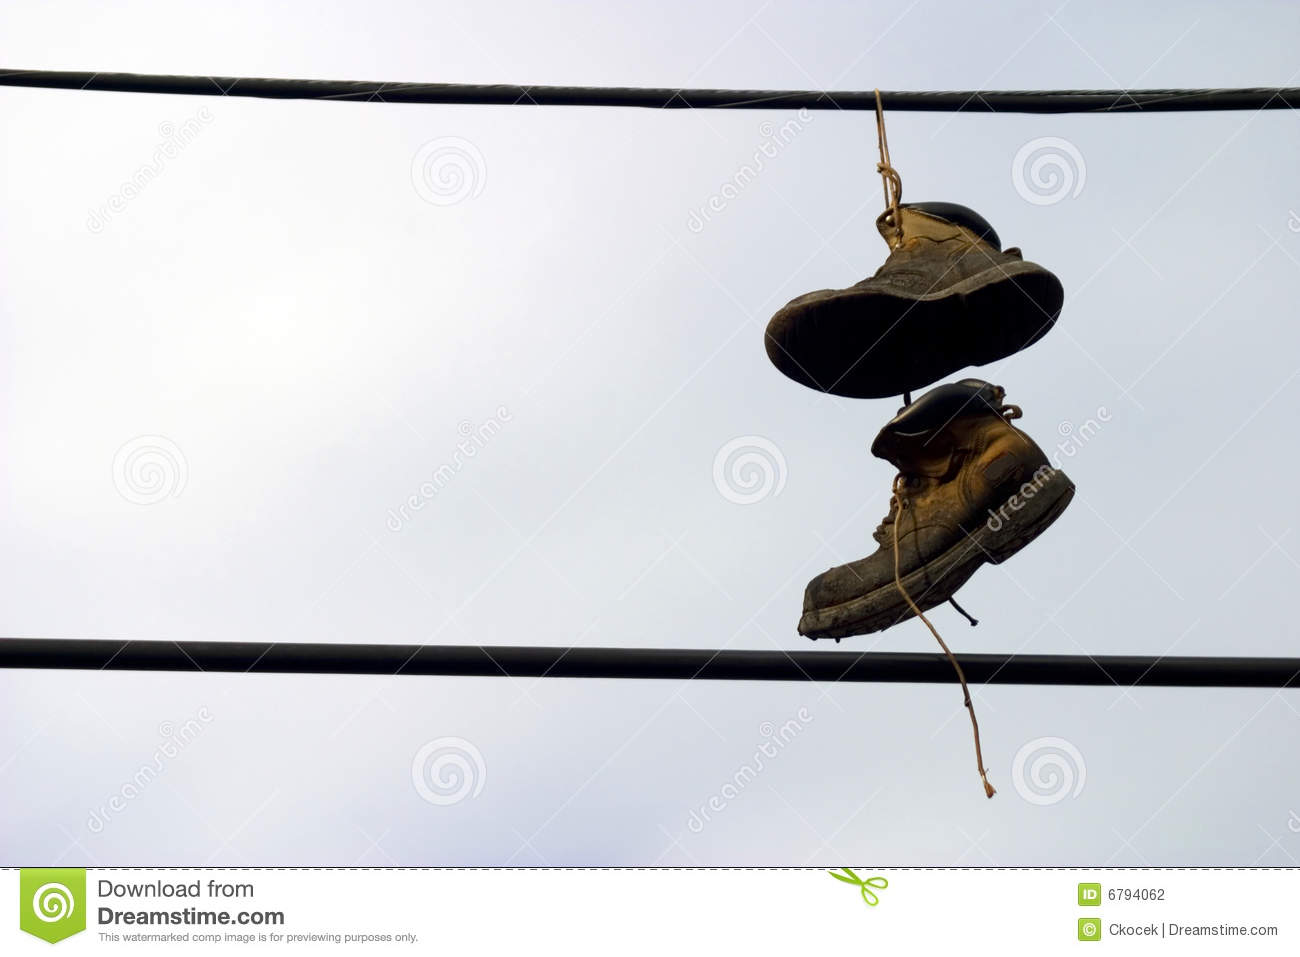 Shoes Hanging Telephone Wire Stock Images - 45 Photos